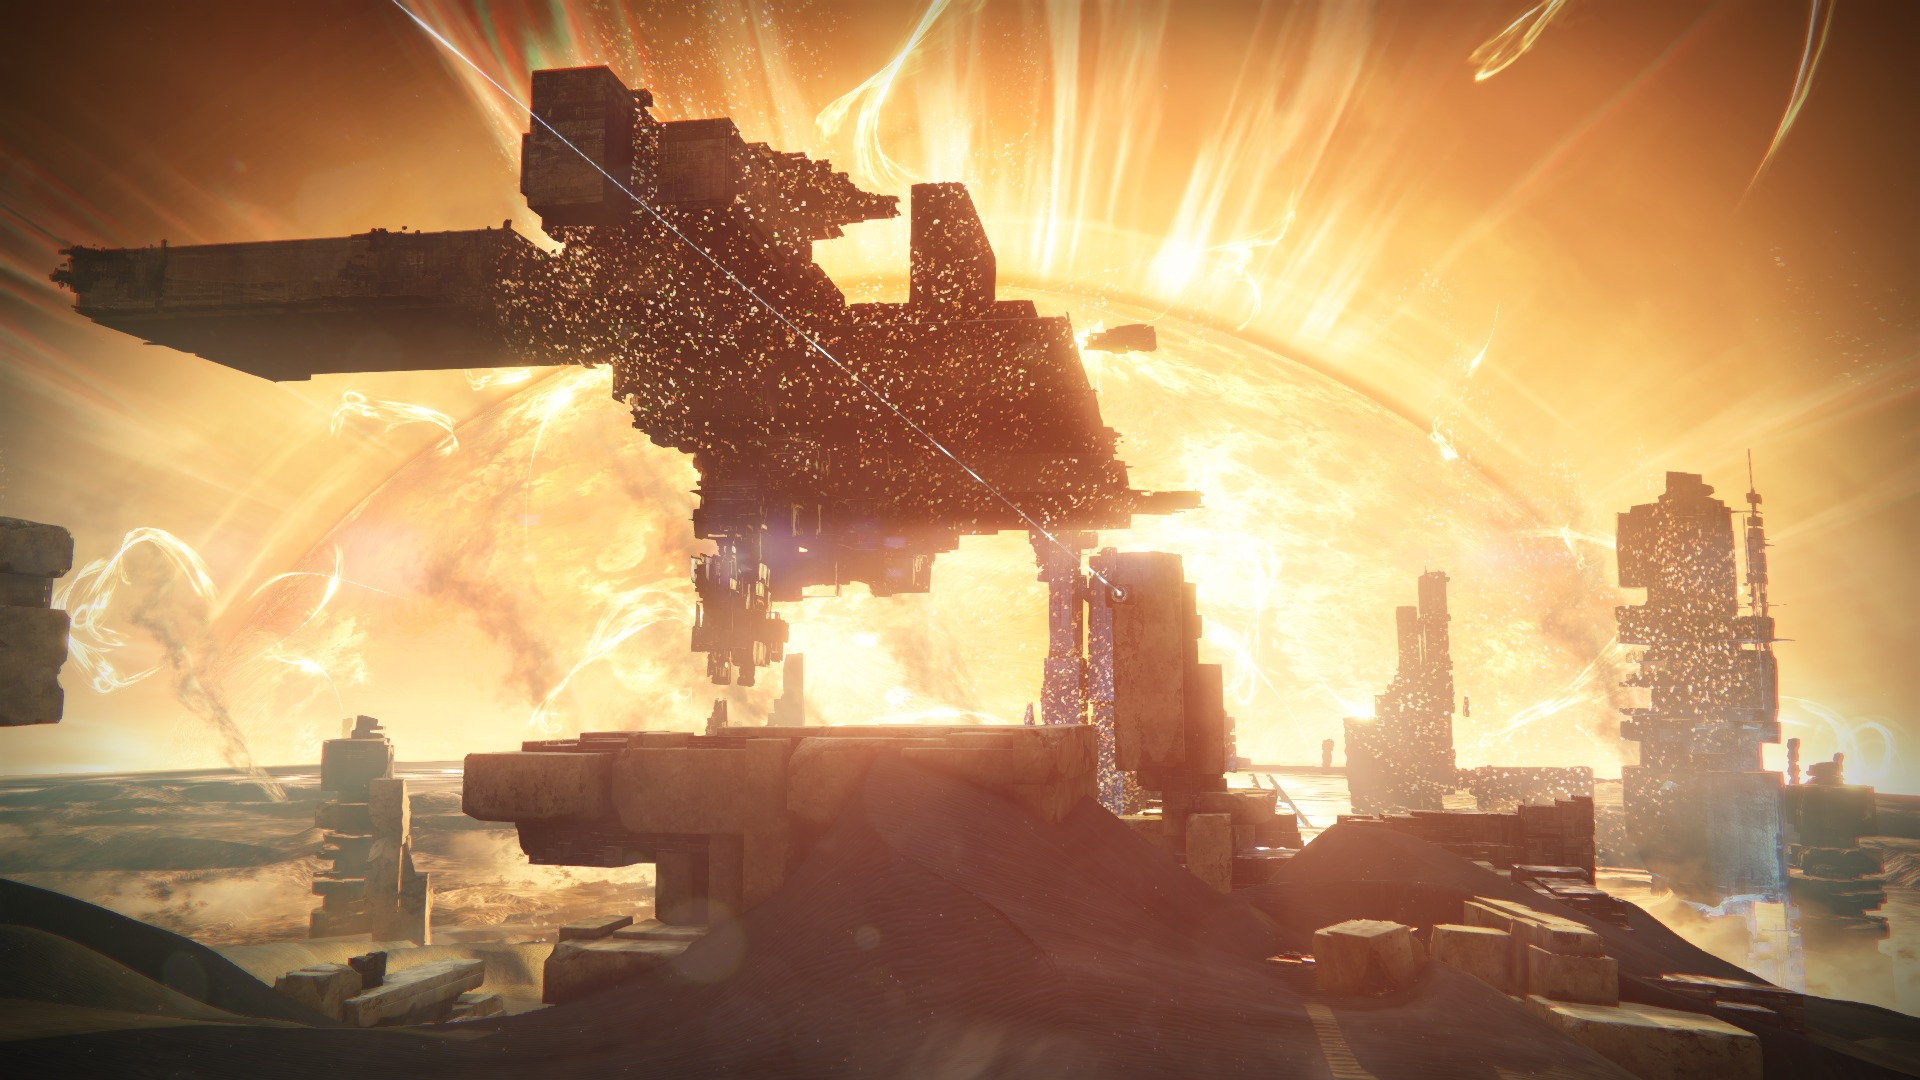 Just Look At These Beautiful Destiny Screenshots VG247